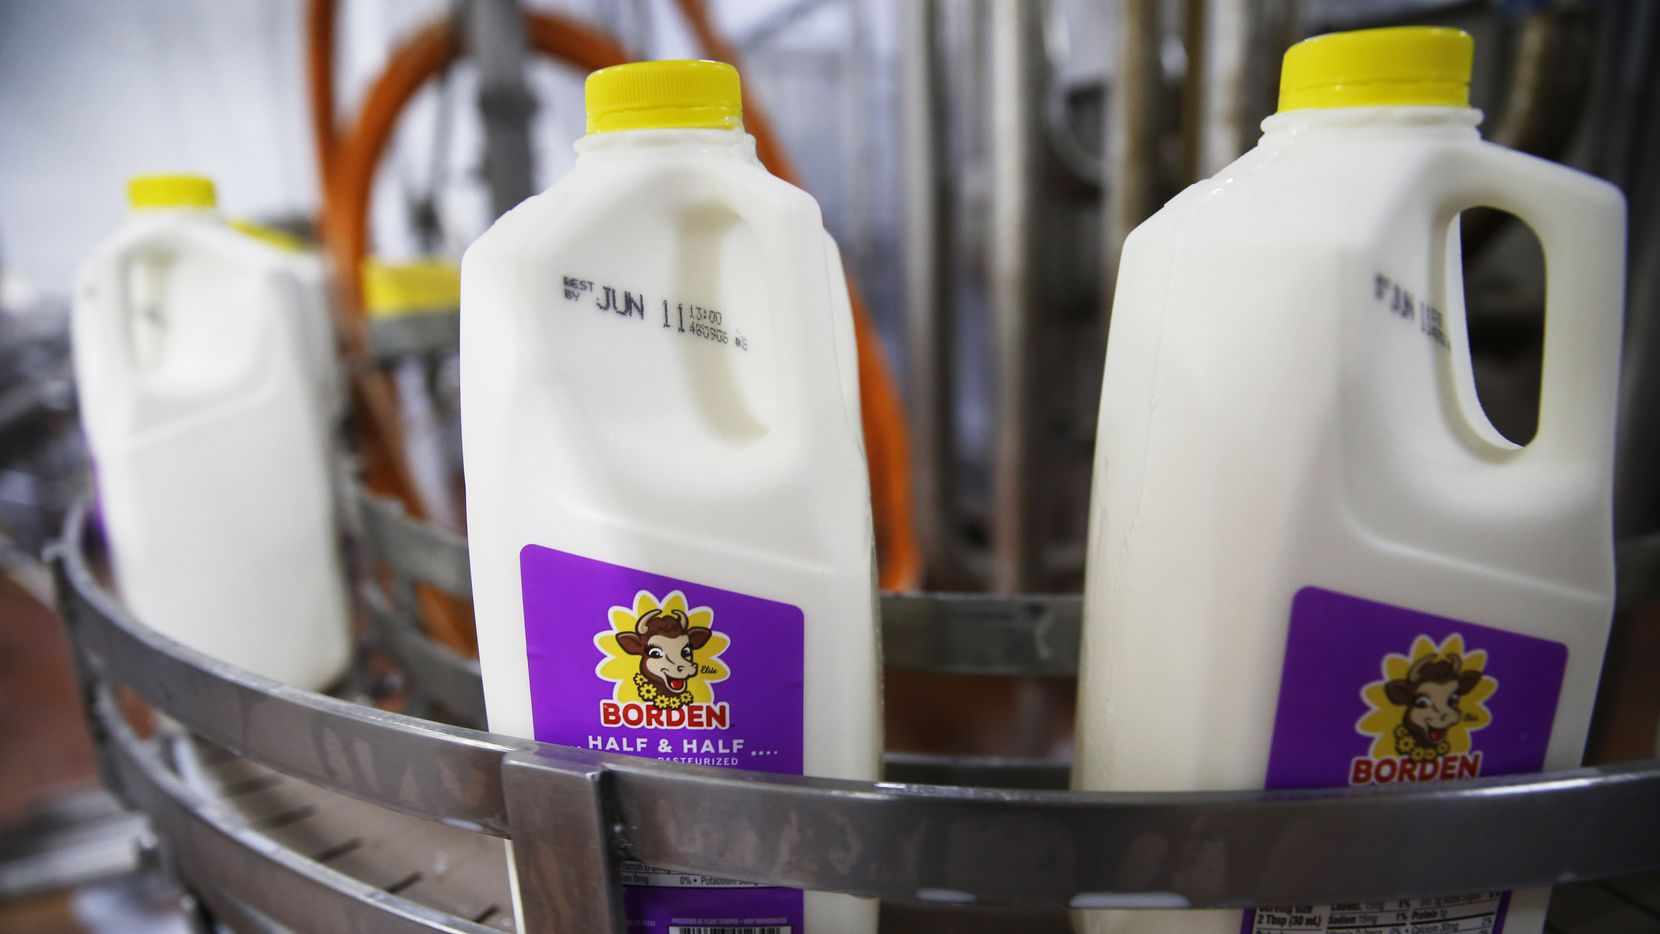 Bottles of half & half make their way through the bottling line at Borden Dairy Co. in Dallas.